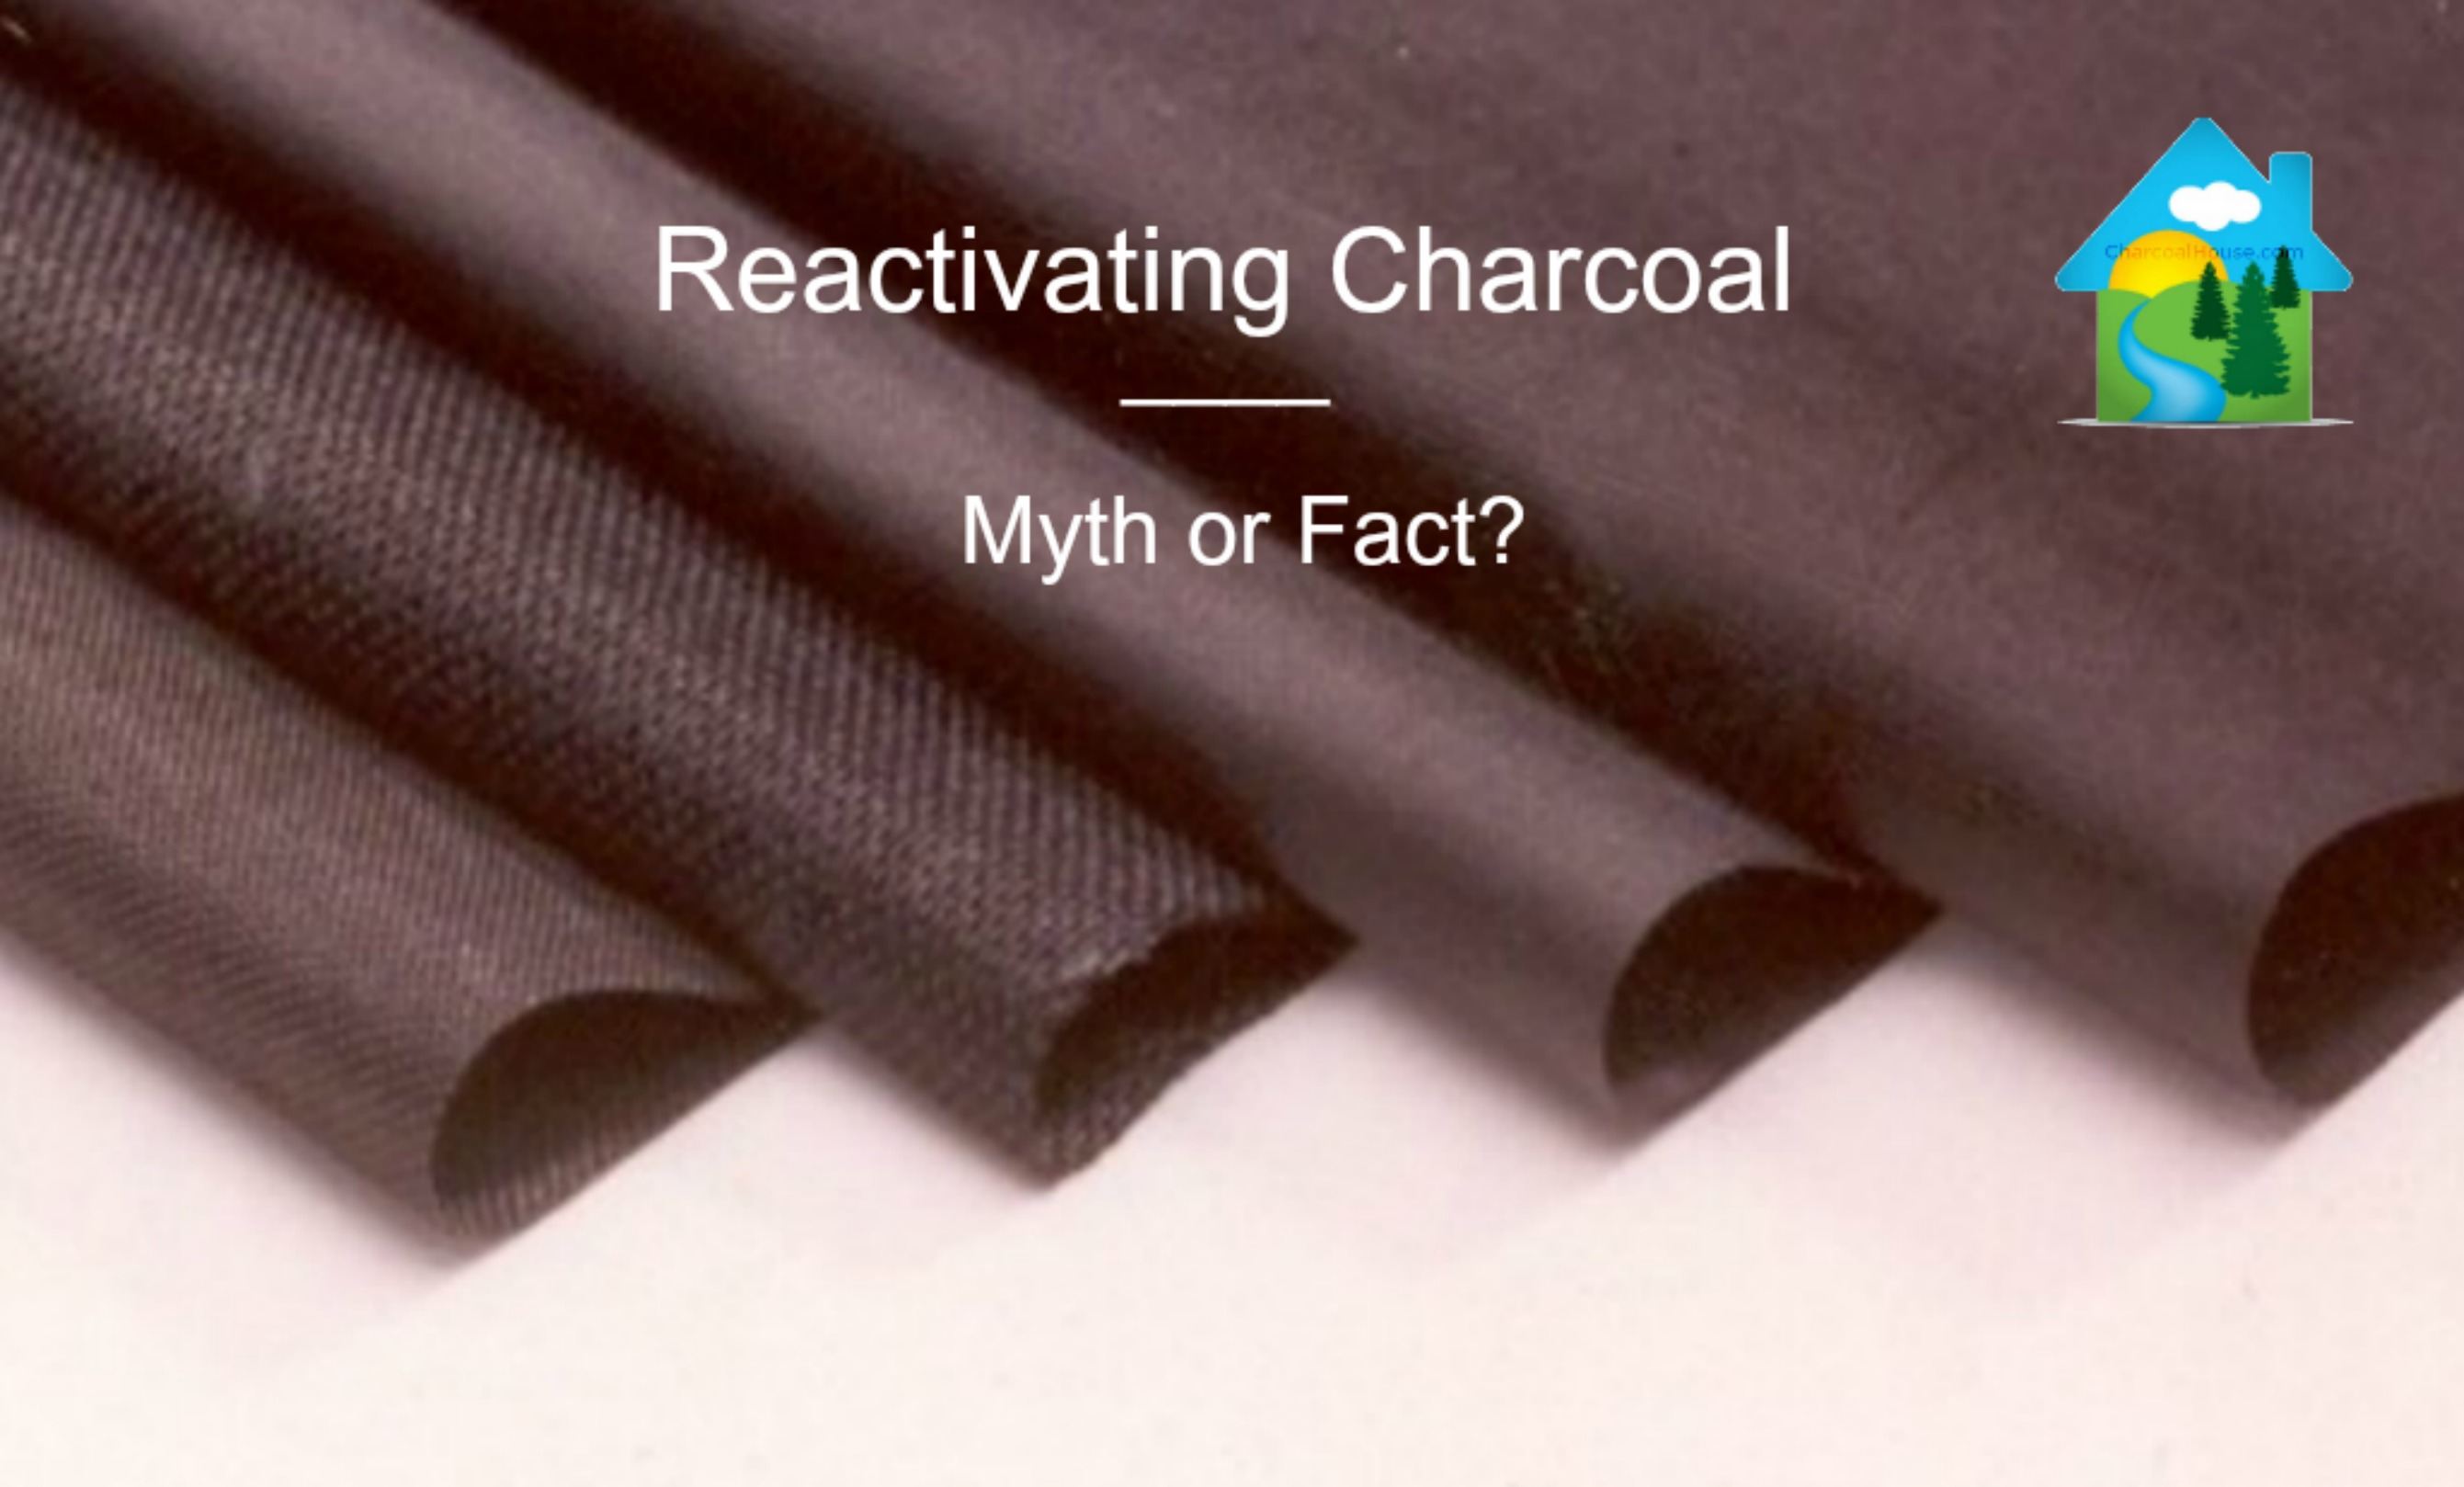 reactivating charcoal myth or fact header - Do you Recommend Reactivating the Charcoal?